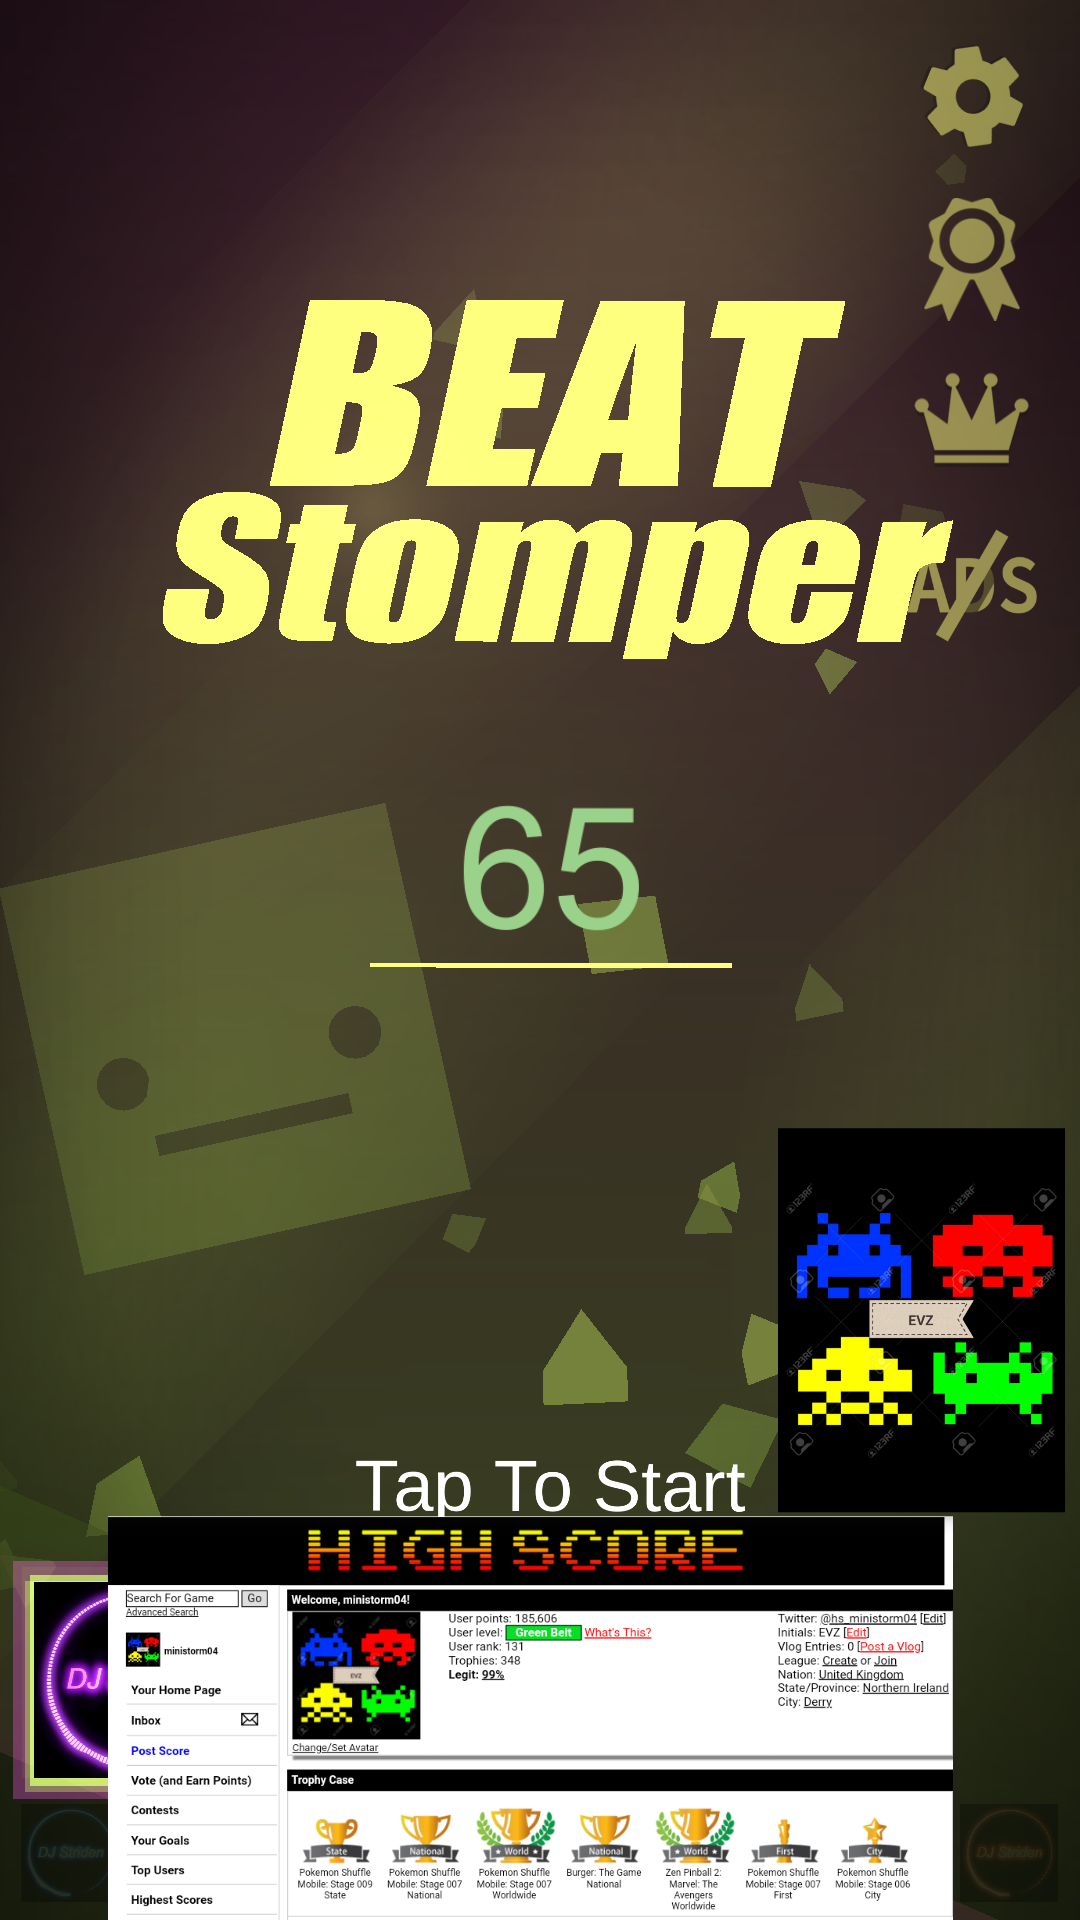 Beat Stomper 65 points